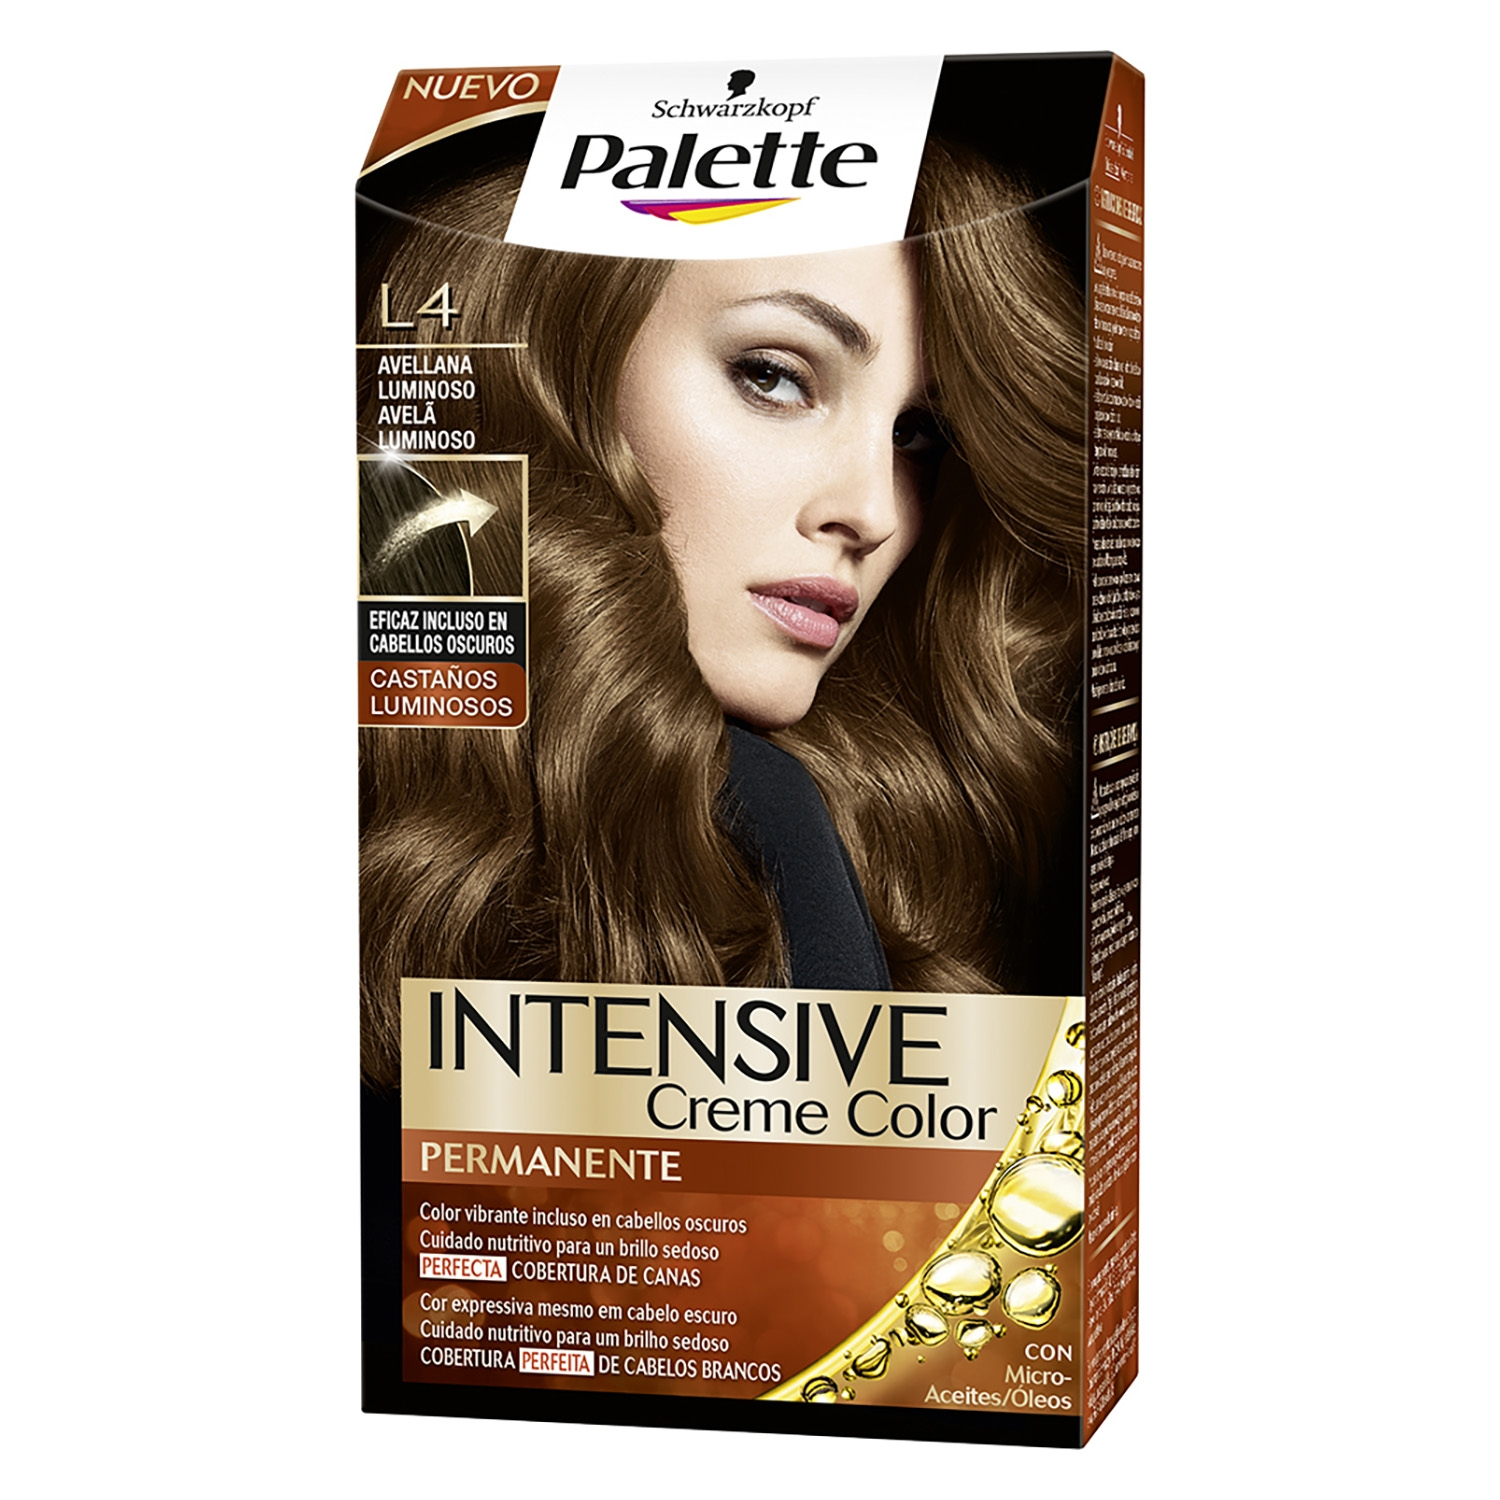 Tinte Intensive Creme Coloration L4 Avellana Luminoso Palette 1 ud.